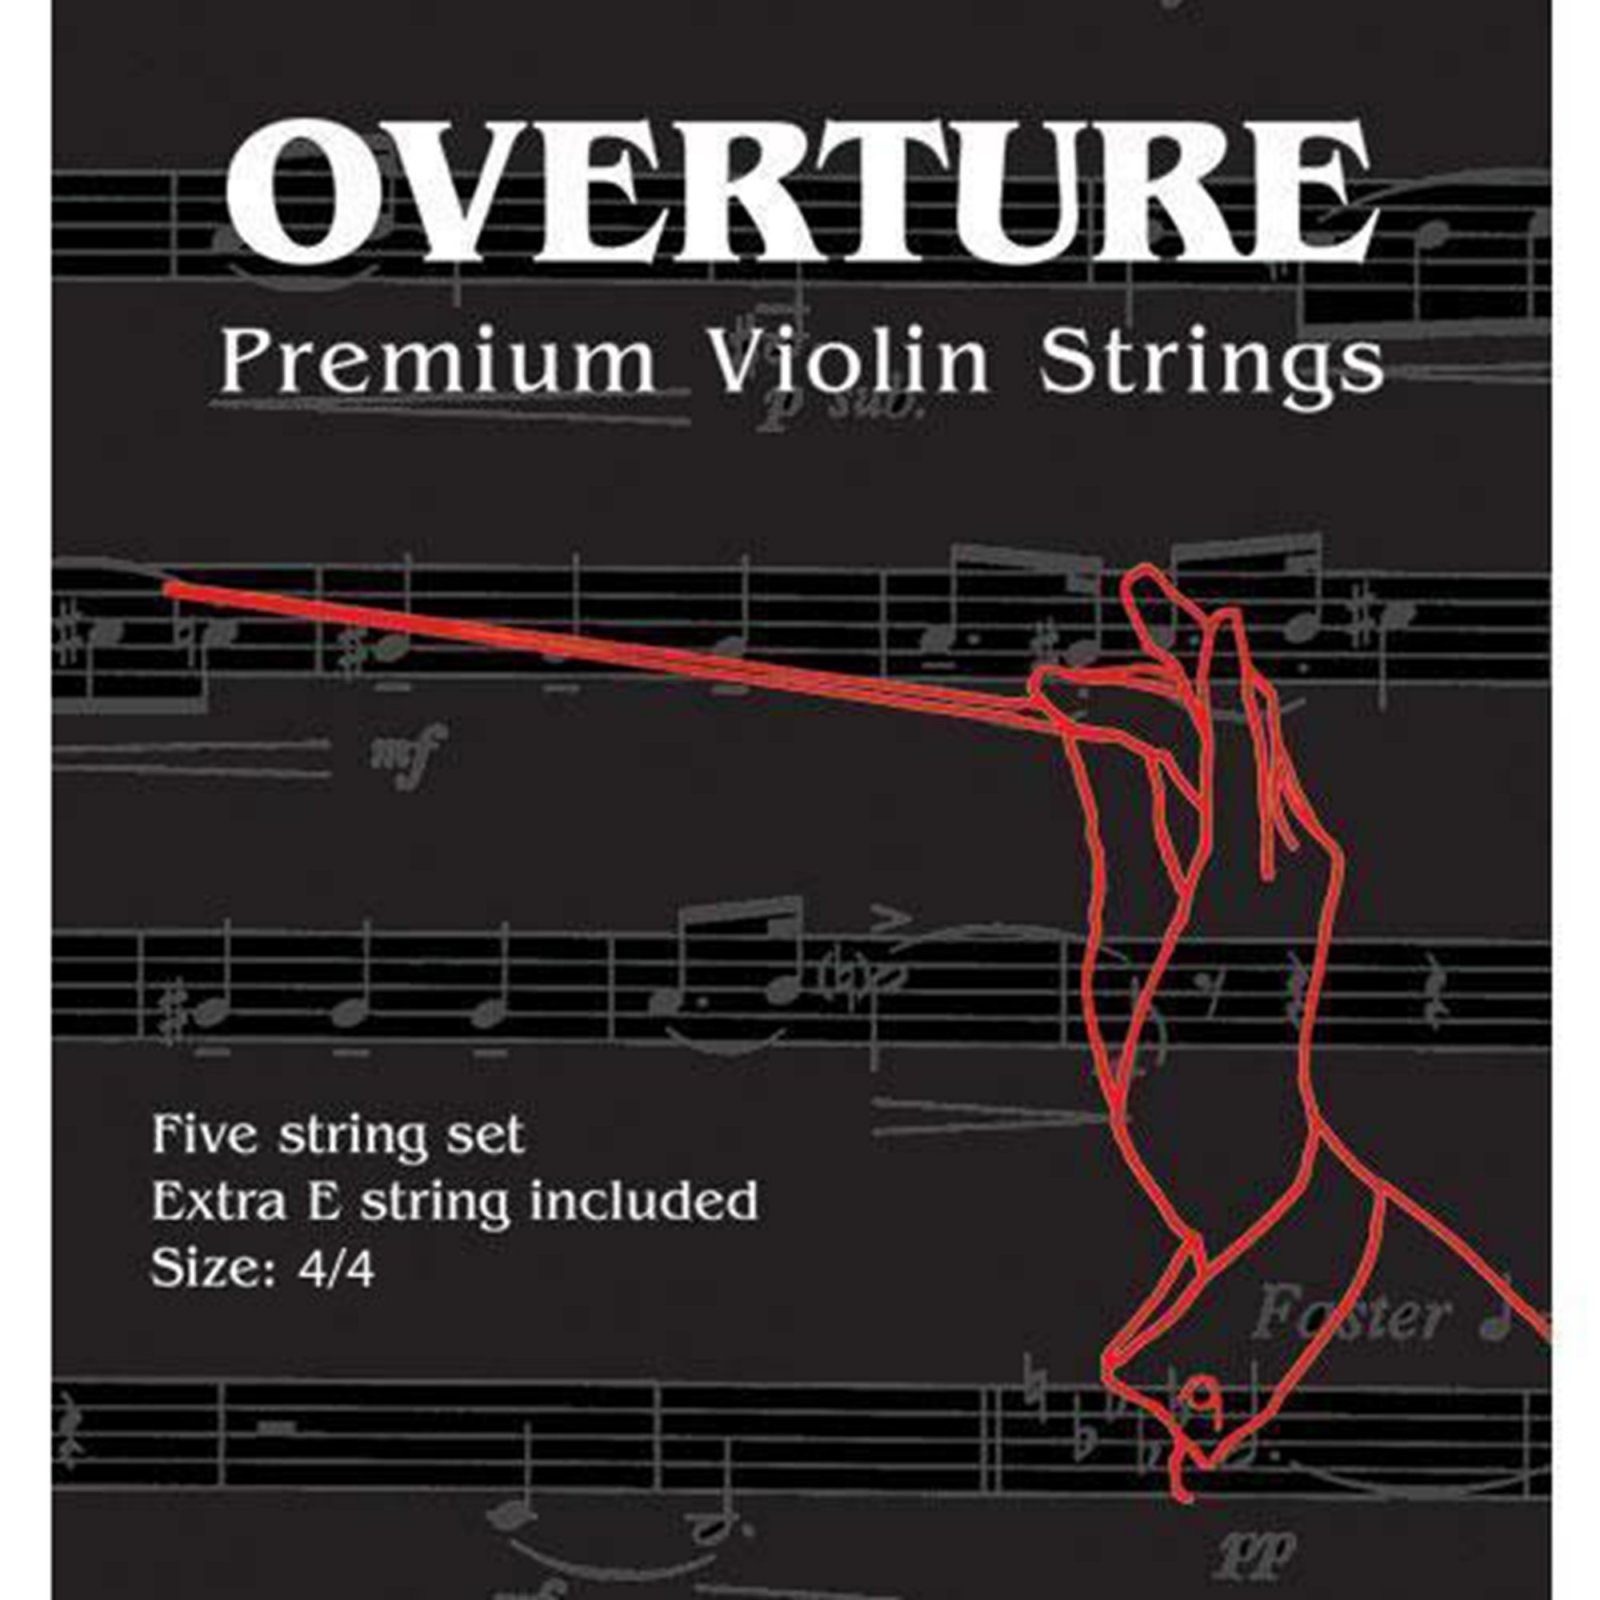 Overture 4/4 Violin Strings